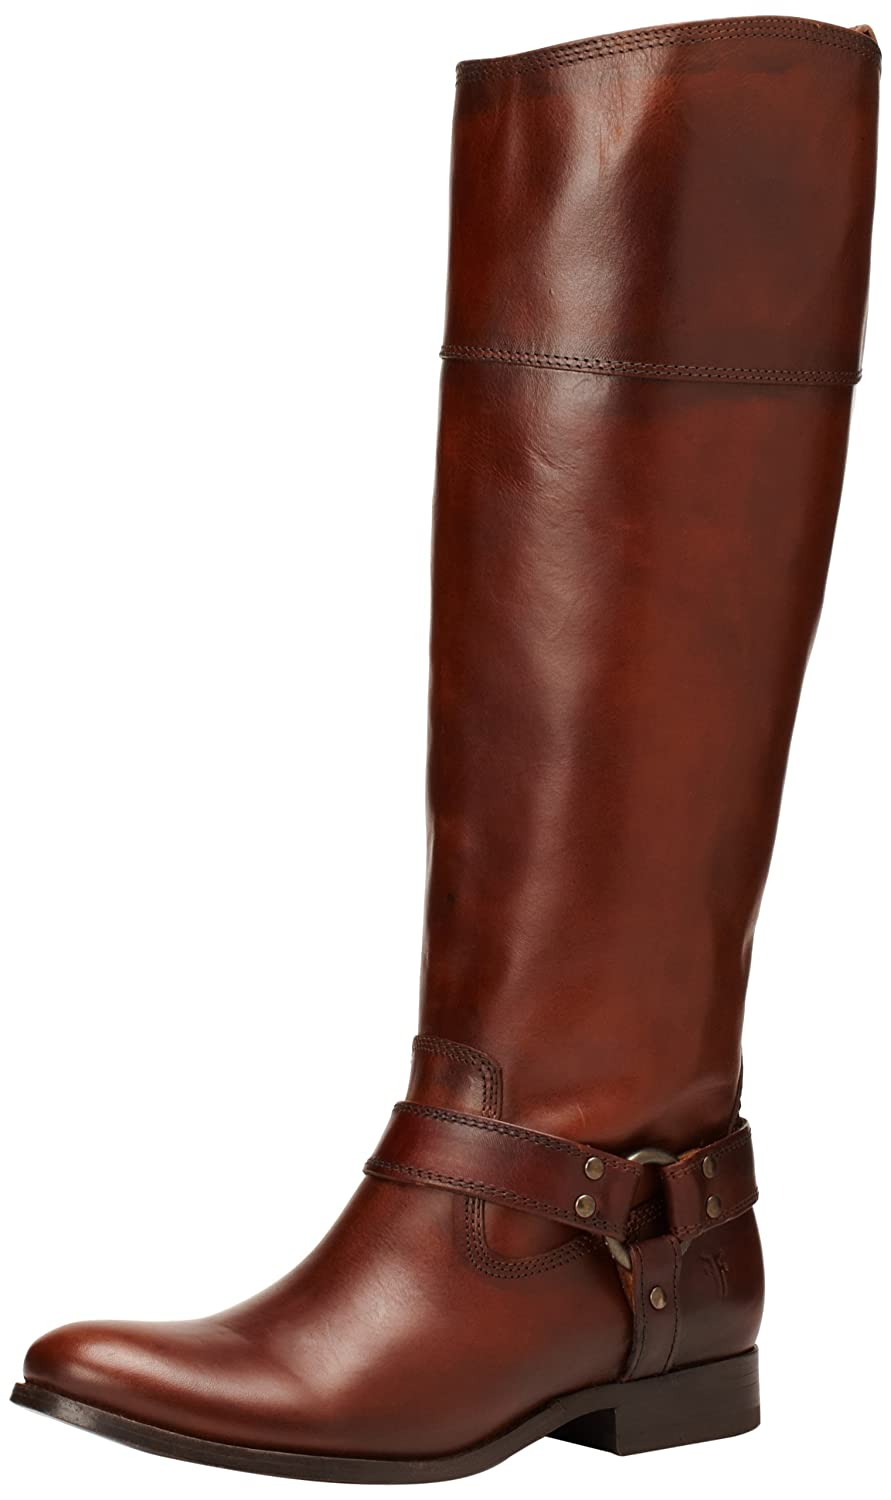 FRYE Women's Melissa Harness Inside-Zip Boot B00AX4LWTQ 7 B(M) US|Redwood Smooth Vintage Leather Wide Calf-76927